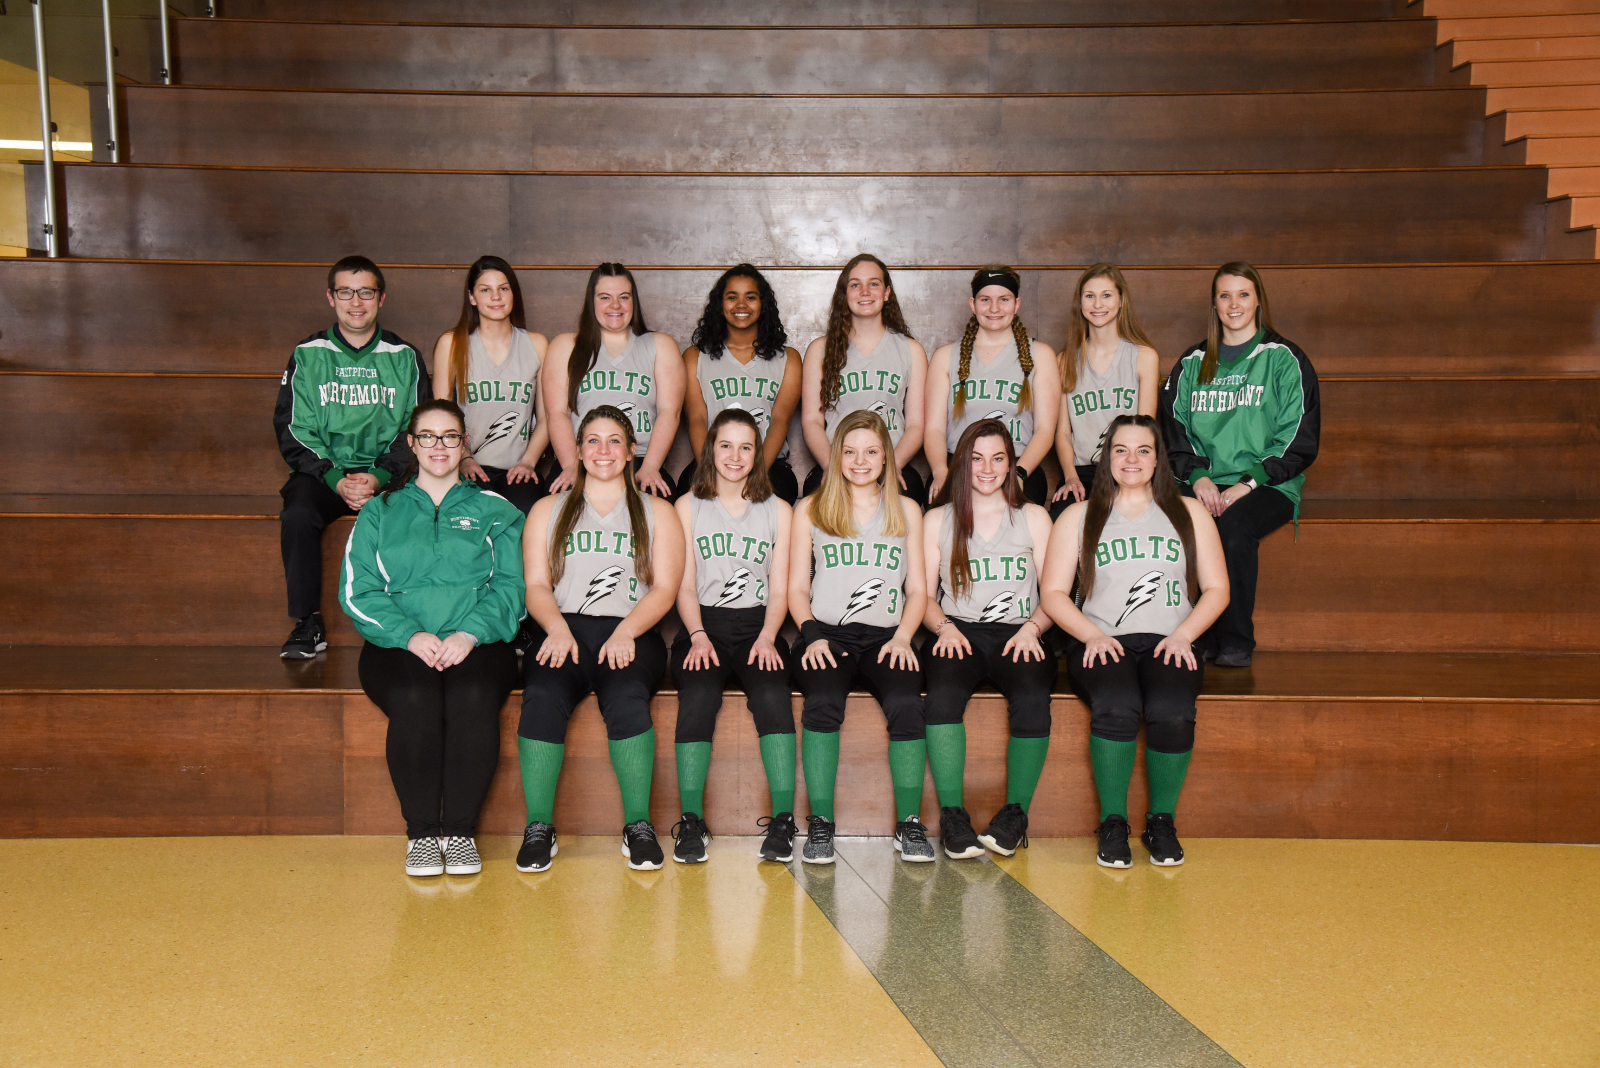 Getting to Know the NHS JV Softball Team